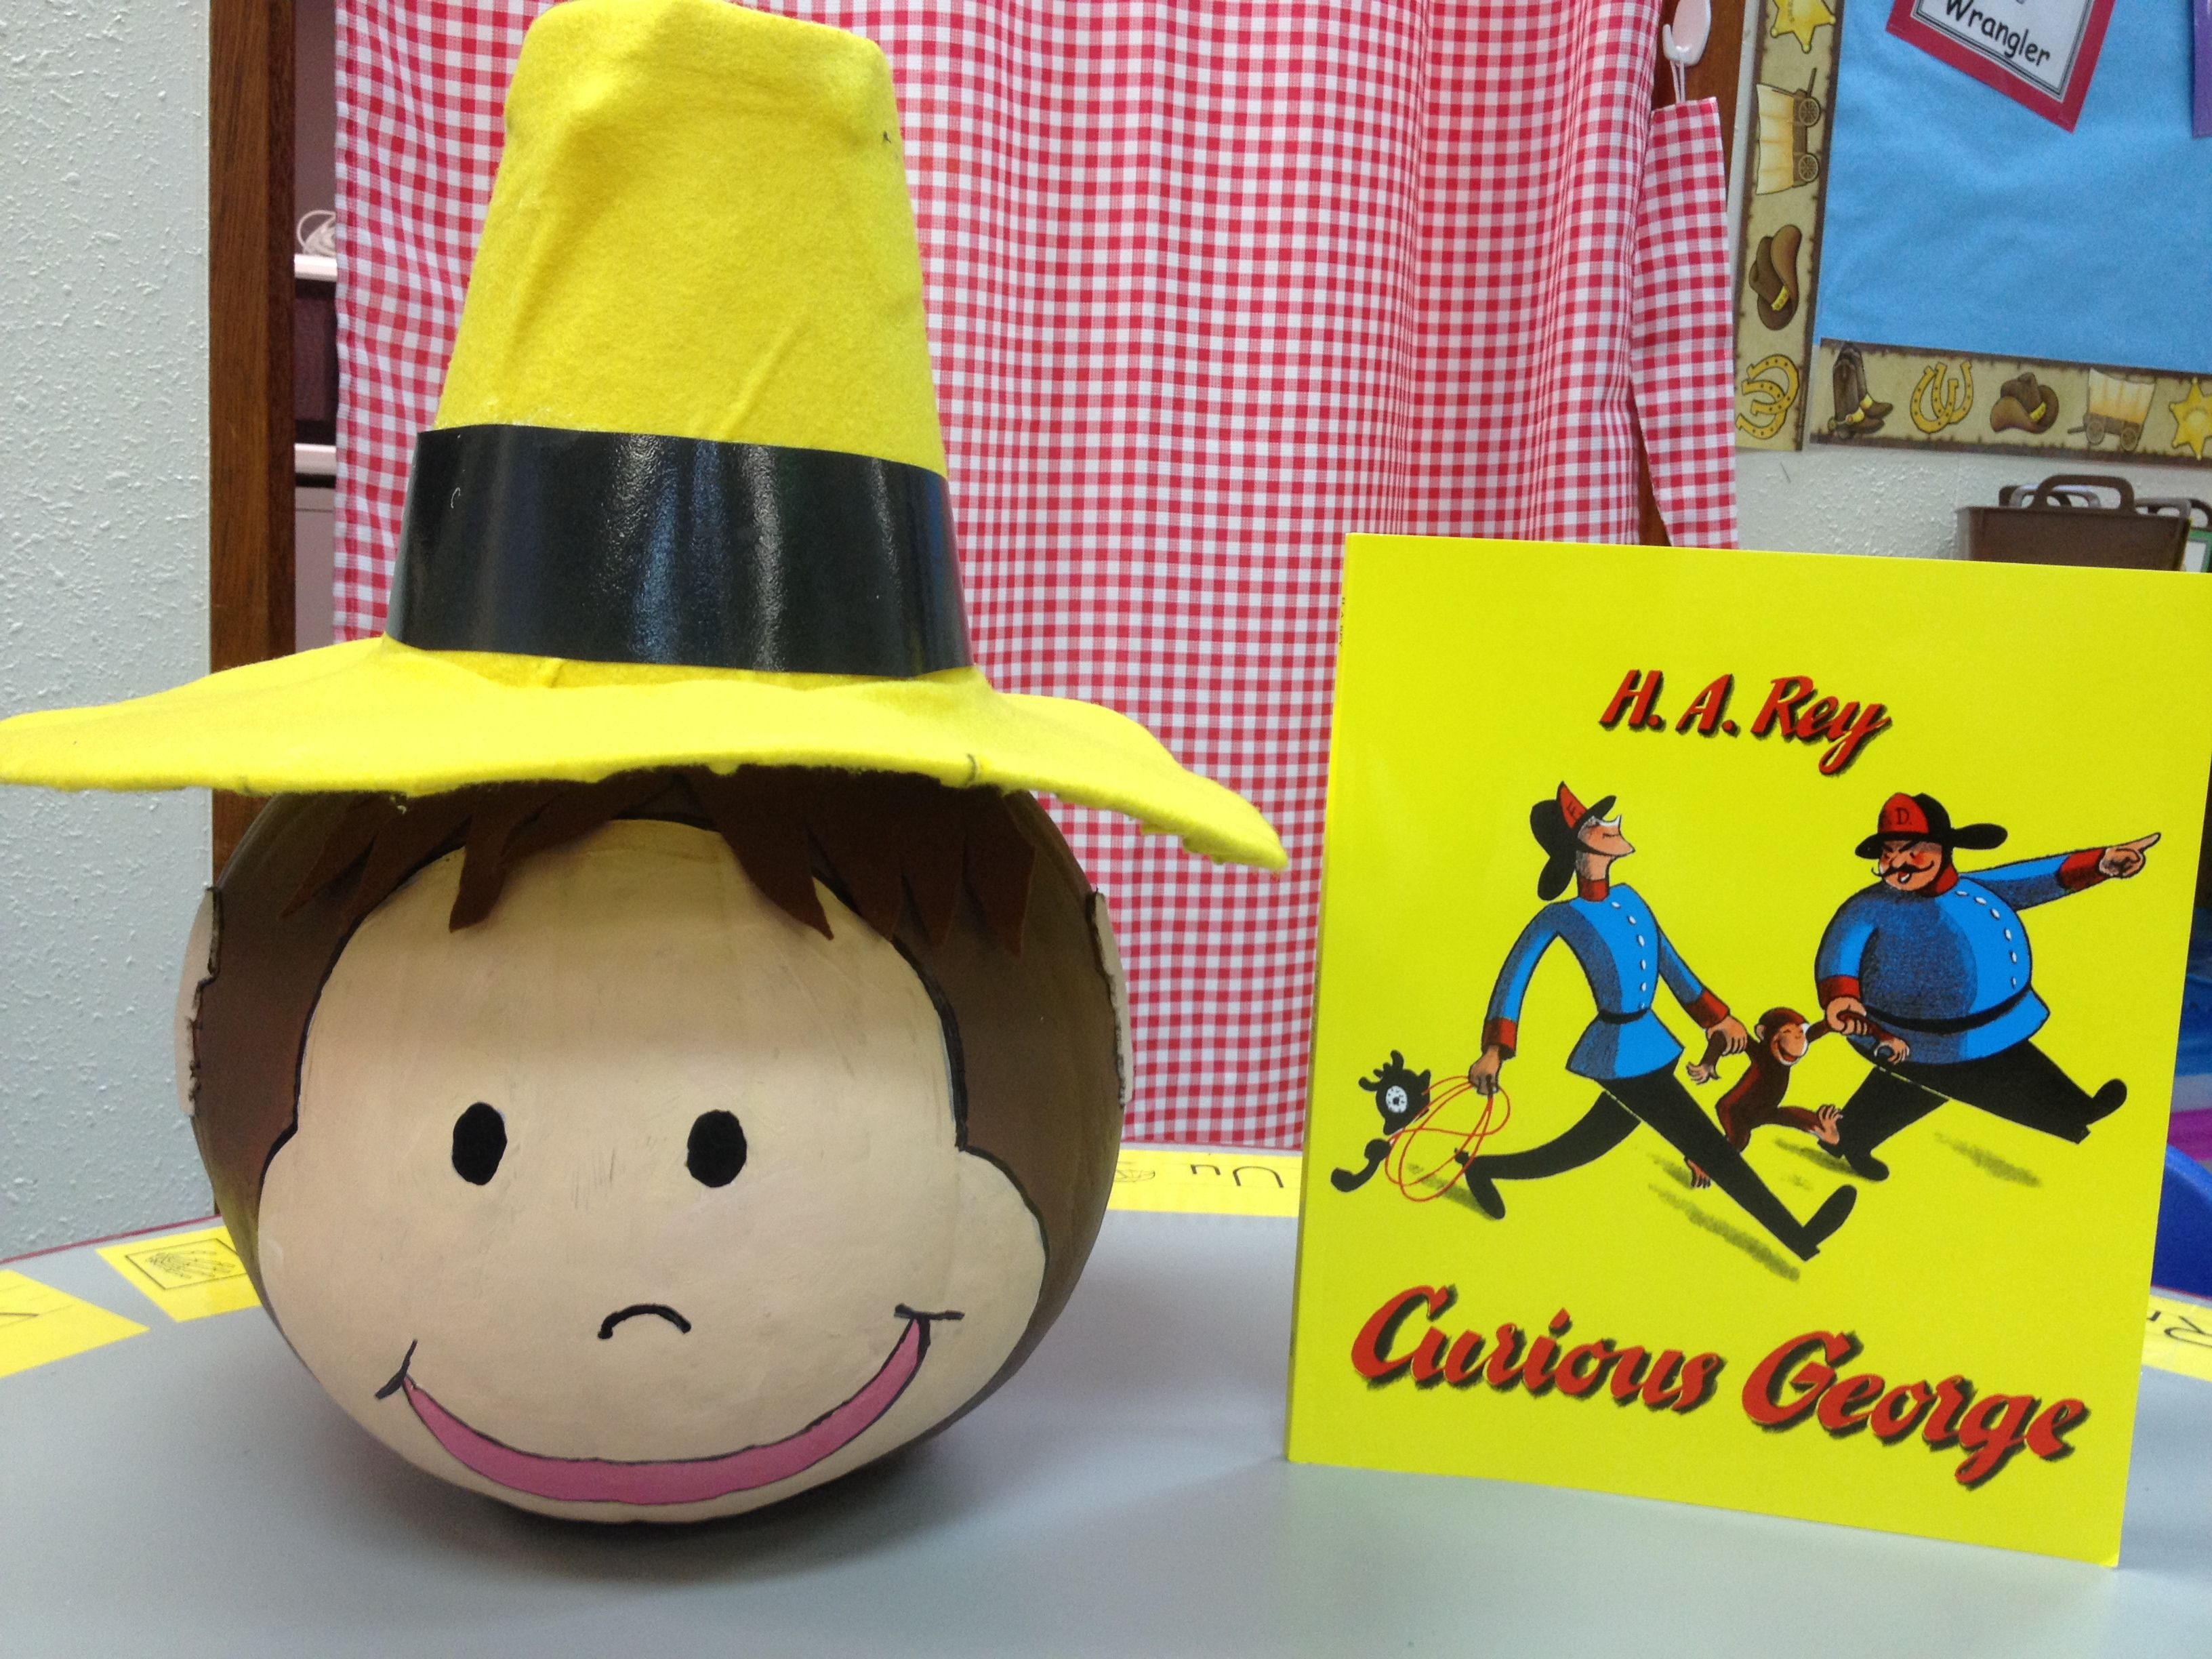 curious george character pumpkin - Curious George Halloween Games